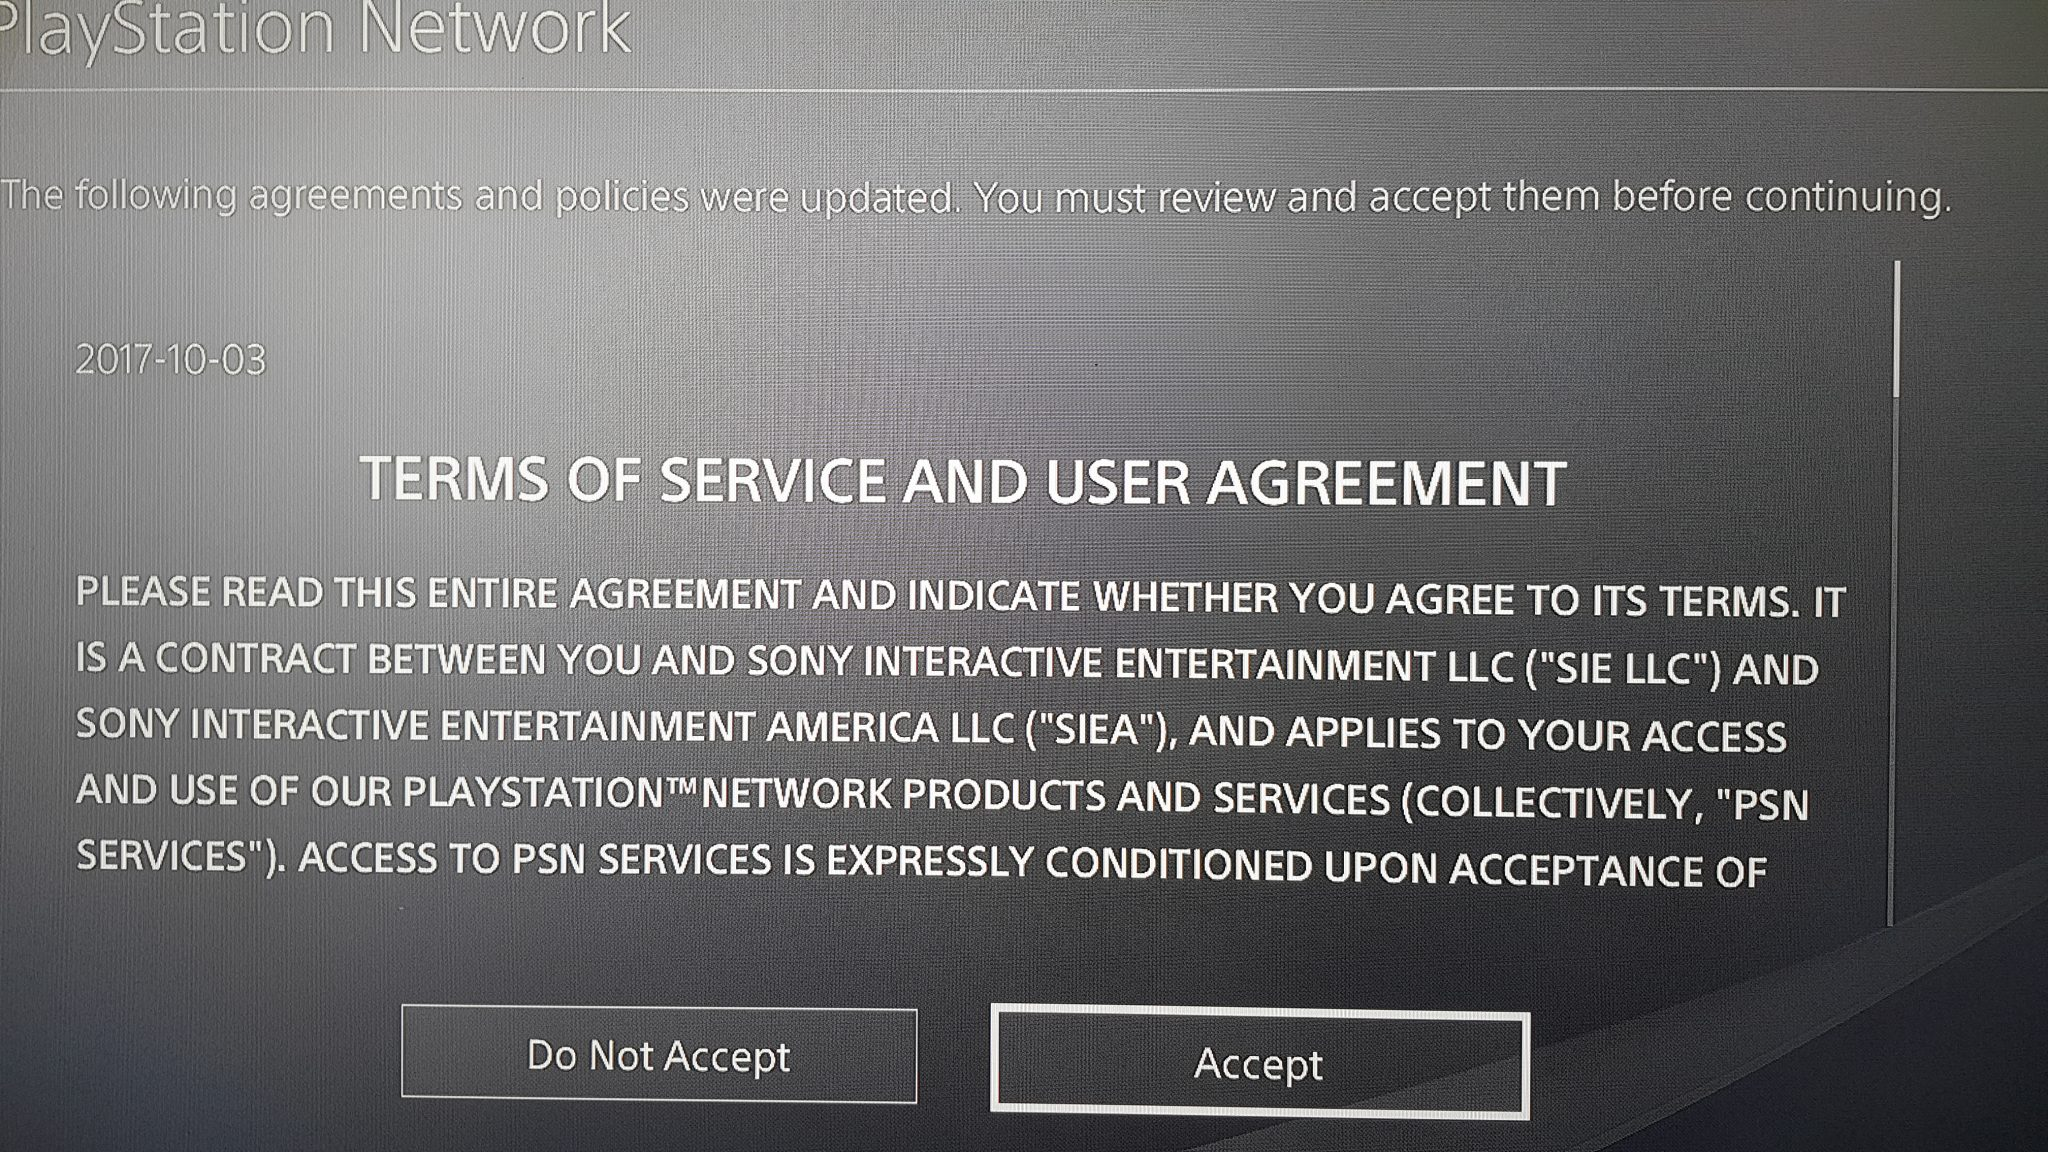 playstation network revised terms of services forcing